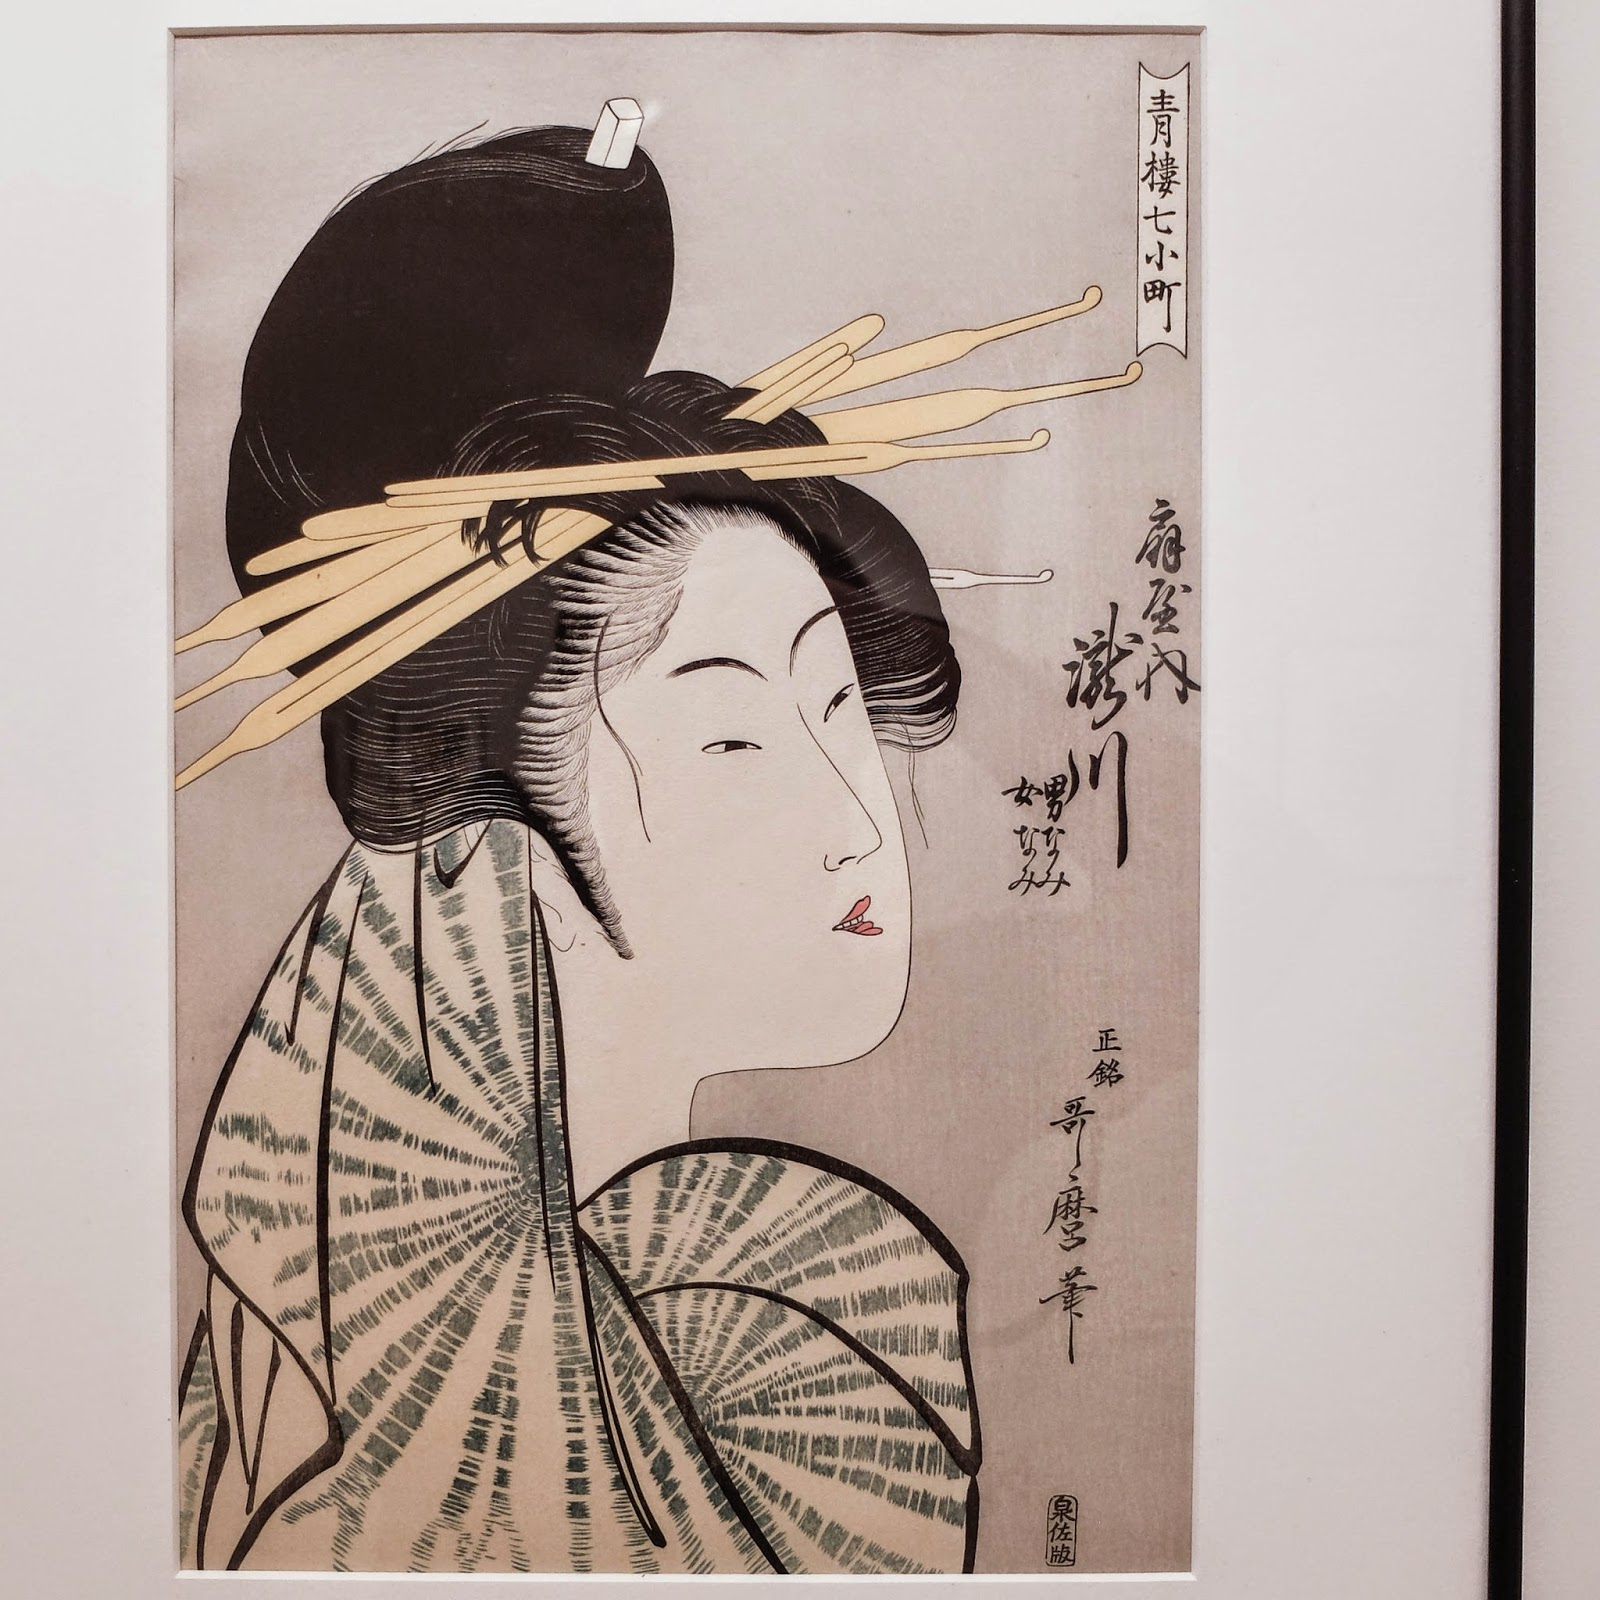 Ukiyoe Portraits exhibit - Takigawa of the Ogi-ya by Utamaro Kitagawa